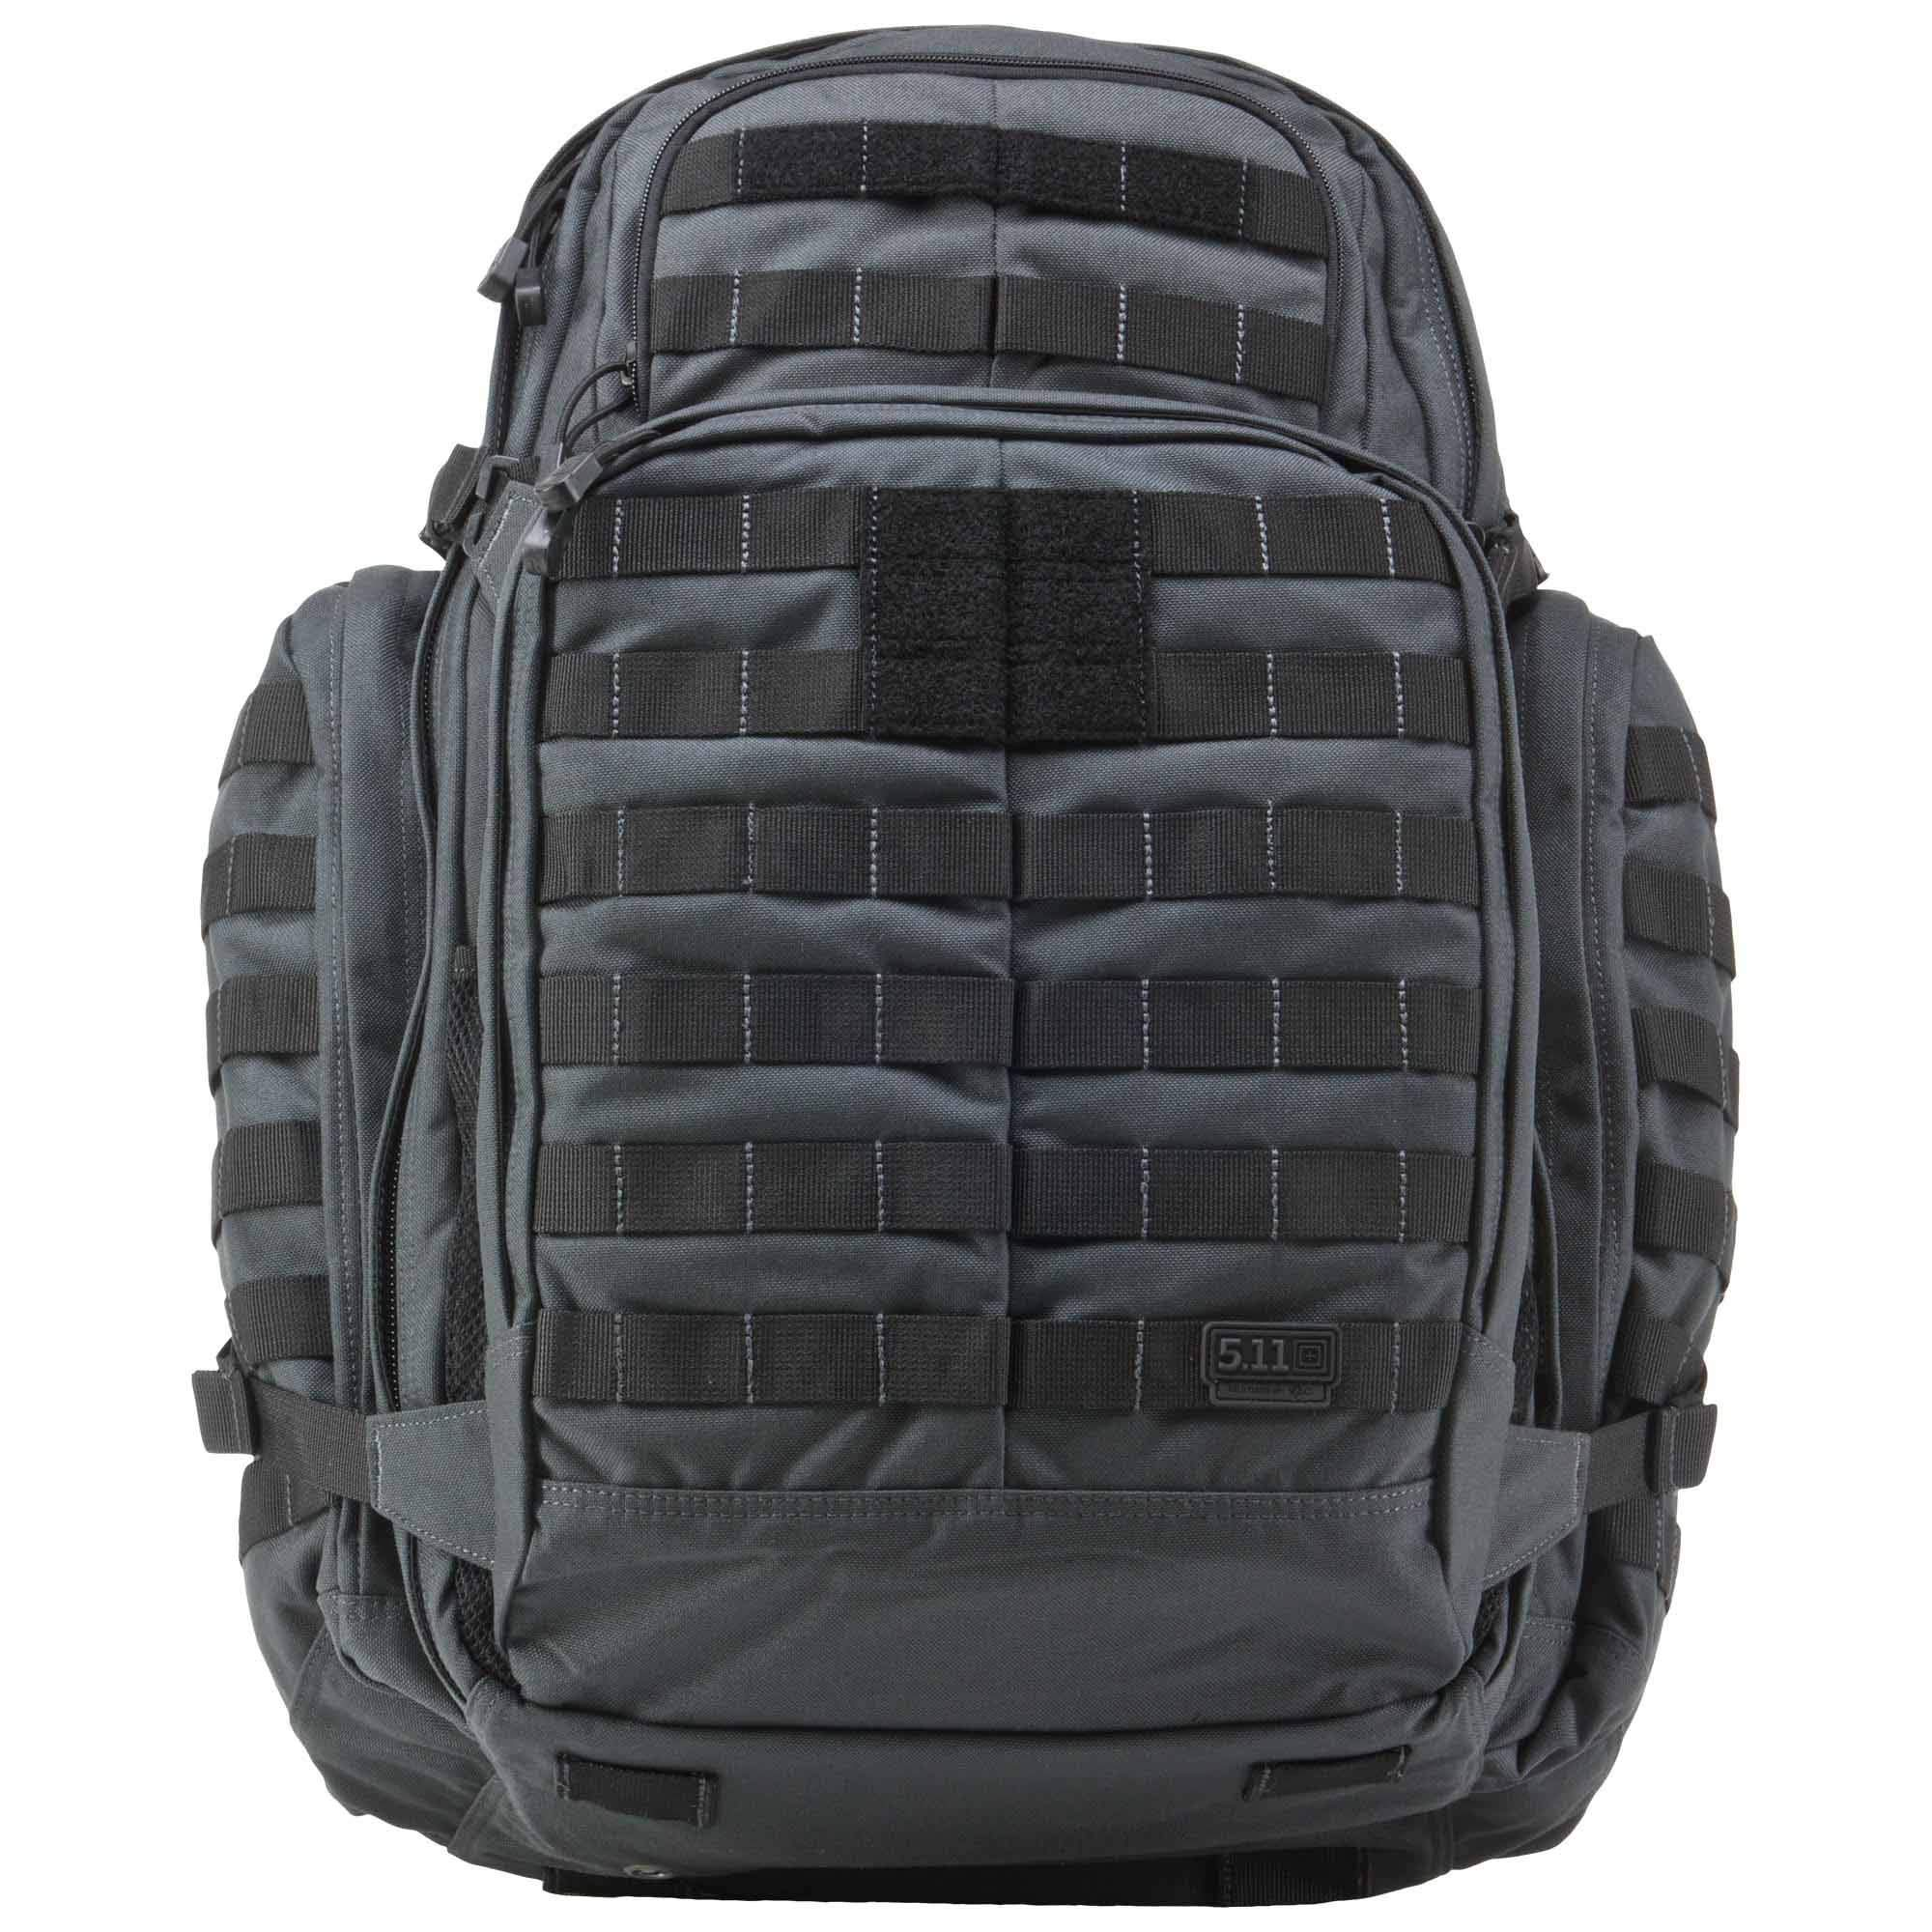 5.11 RUSH72 Tactical Backpack for Military, Bug Out Bag, Molle Pack, Large, Style 58602, Double Tap by 5.11